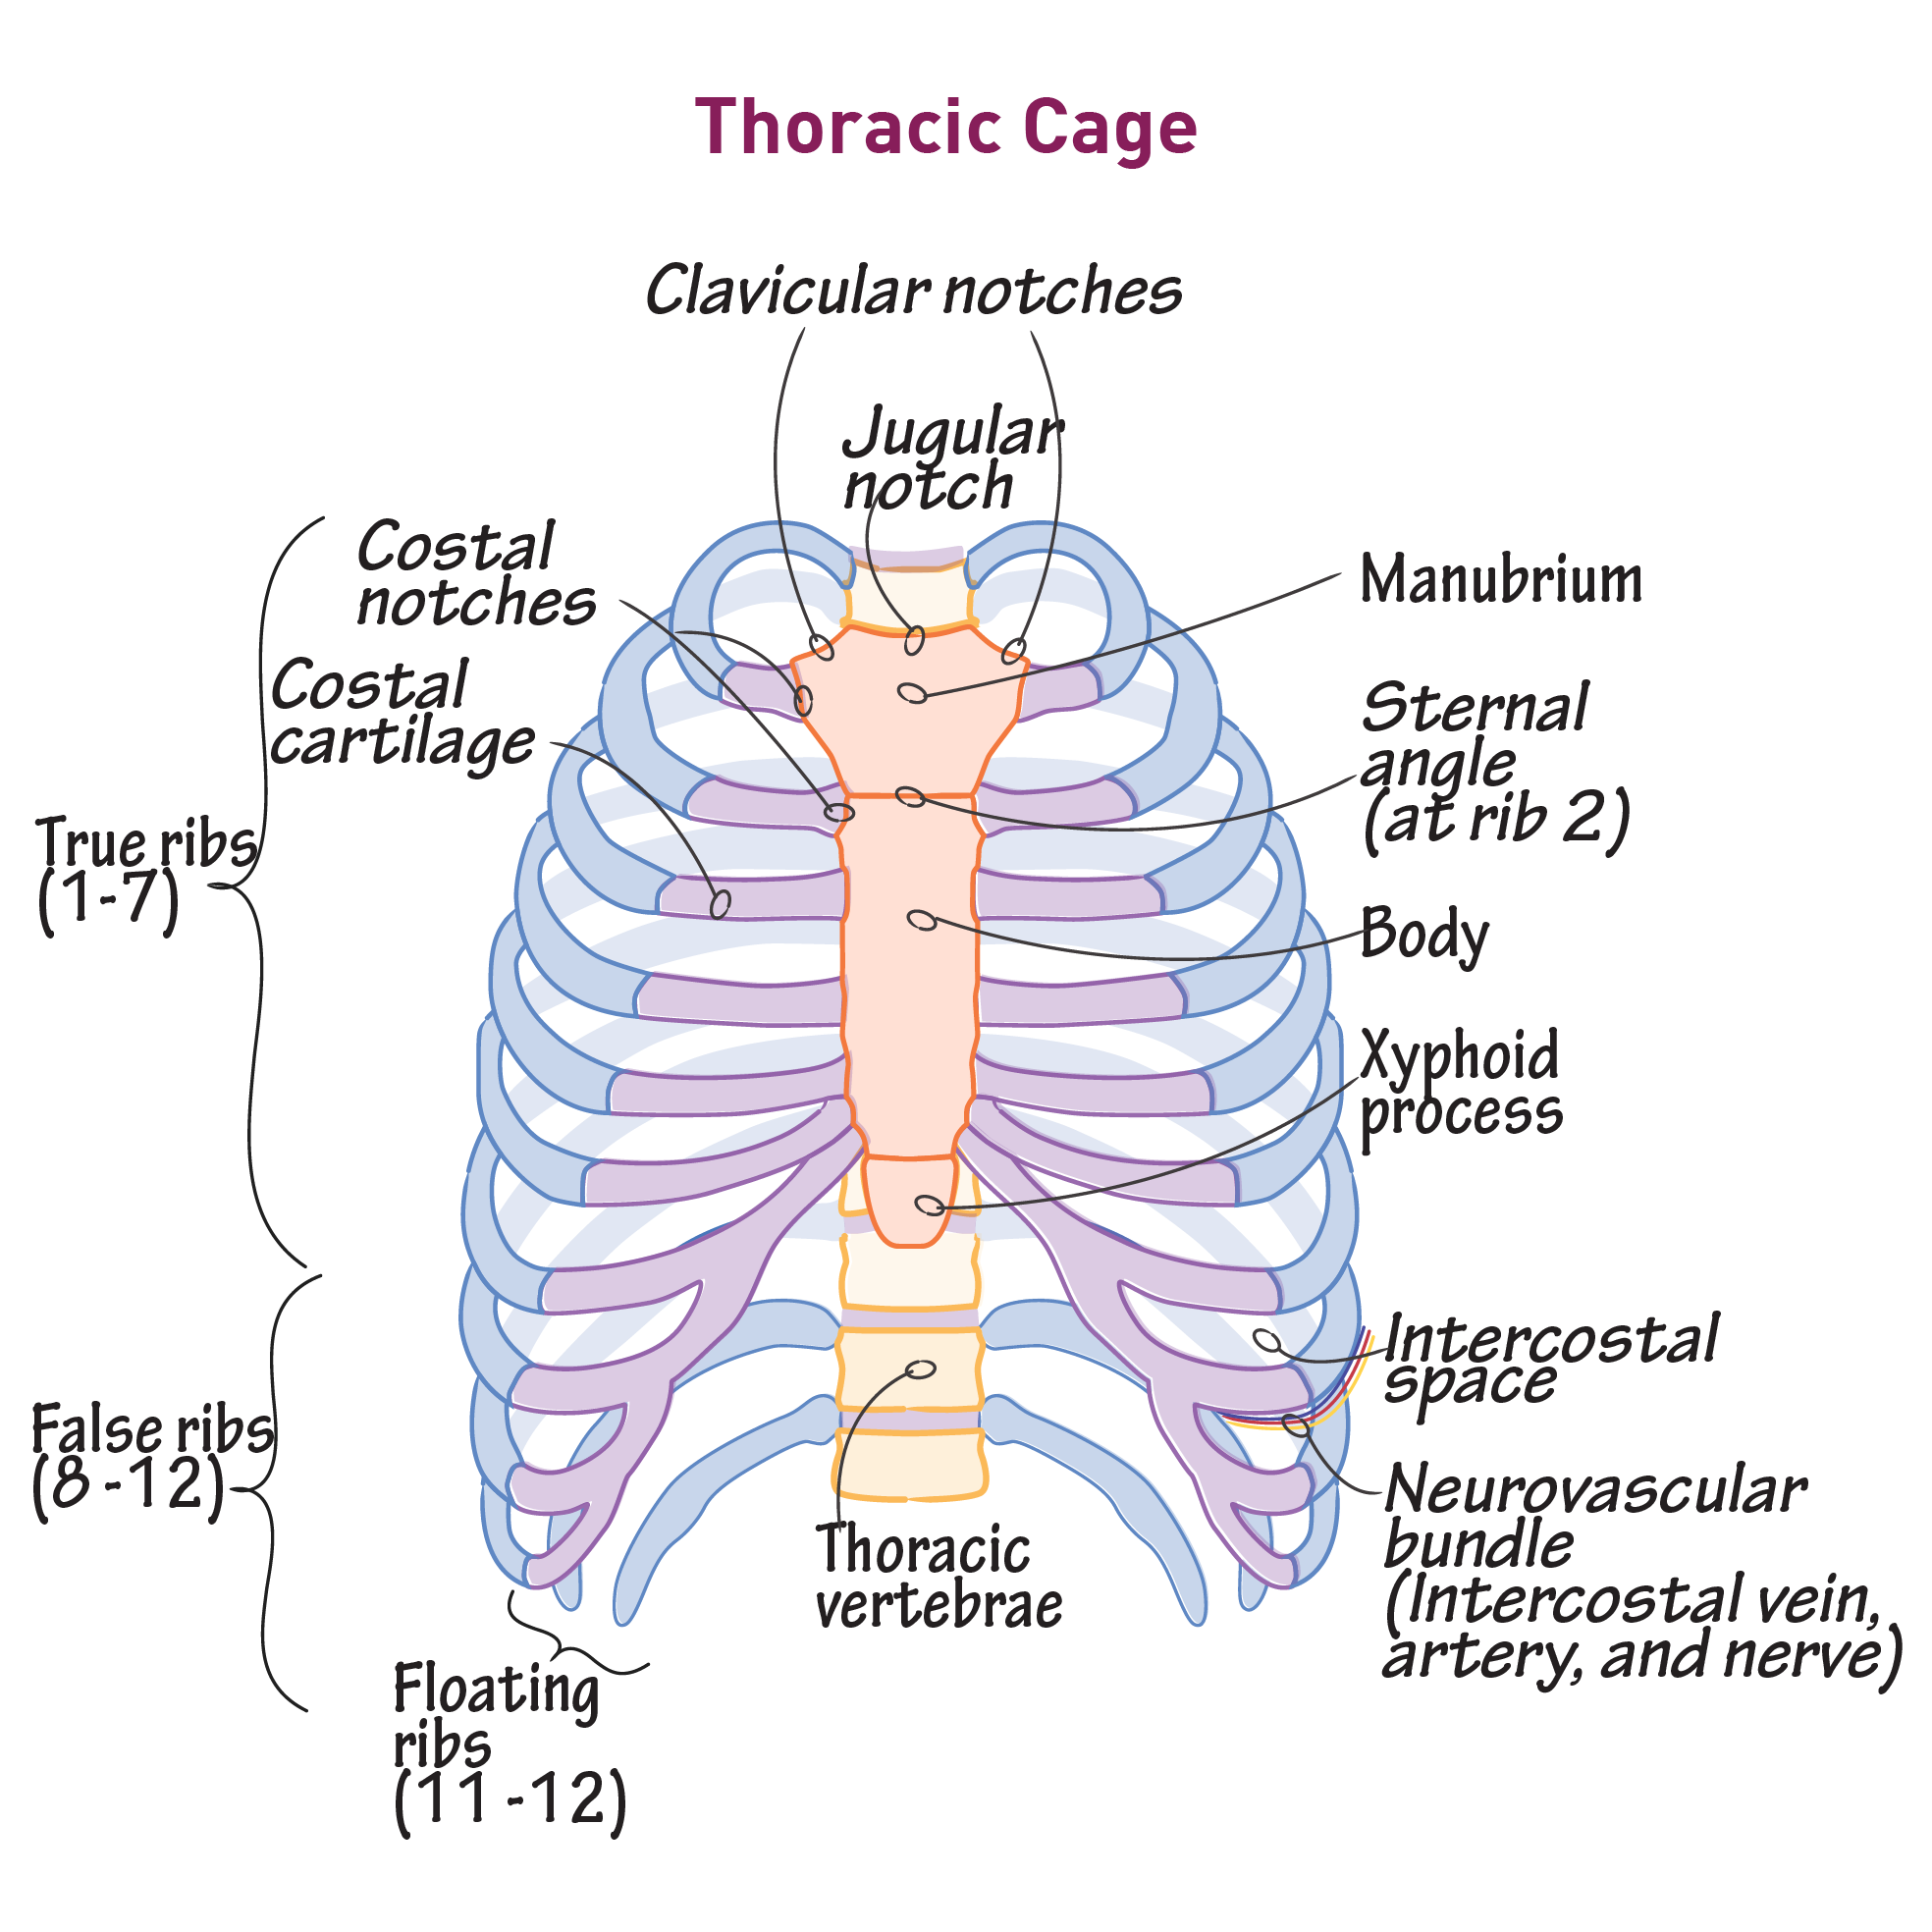 Thoracic Cage Gross Anatomy Flashcards Draw It To Know It